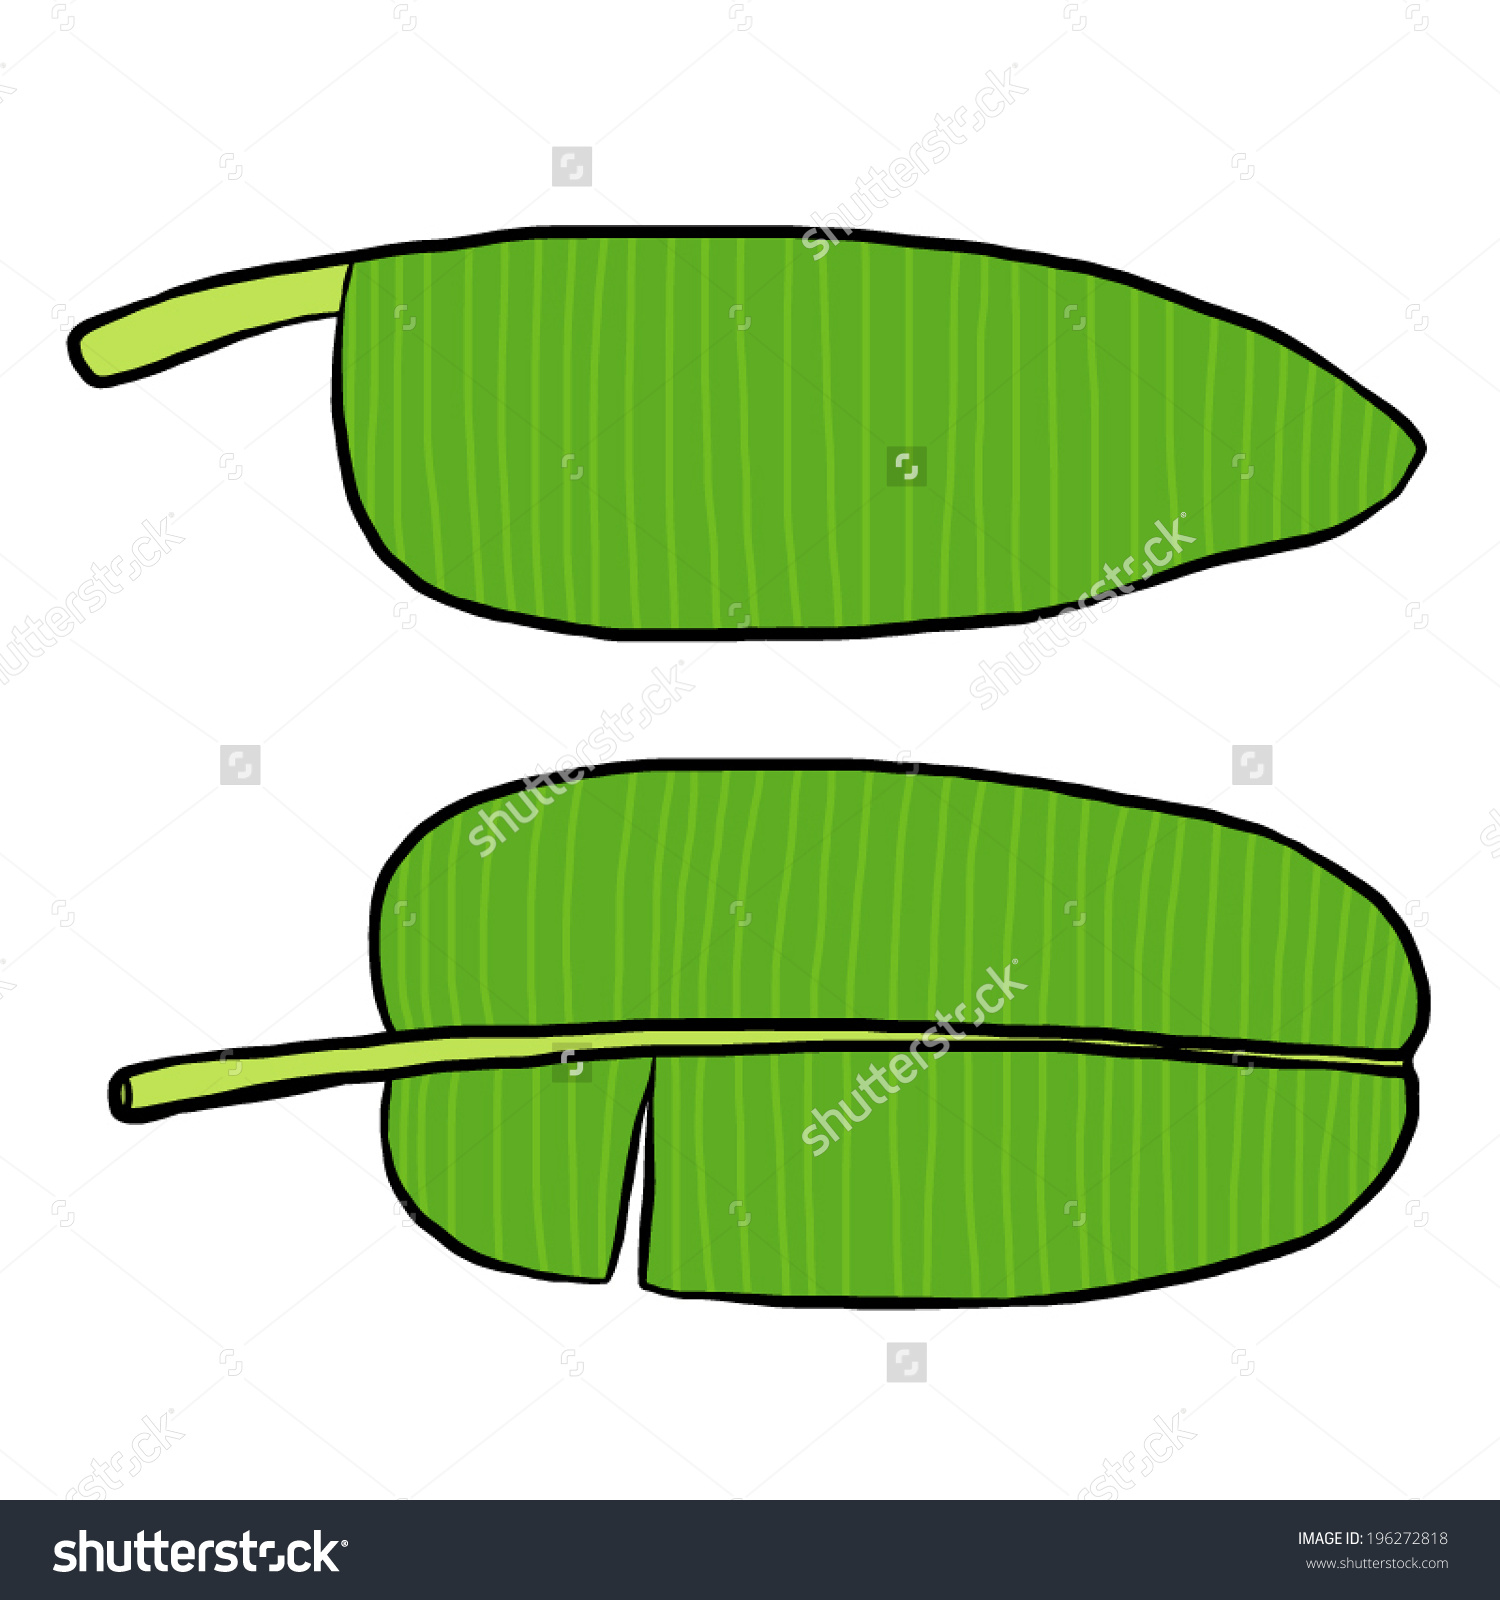 Banana leaf clipart buy.